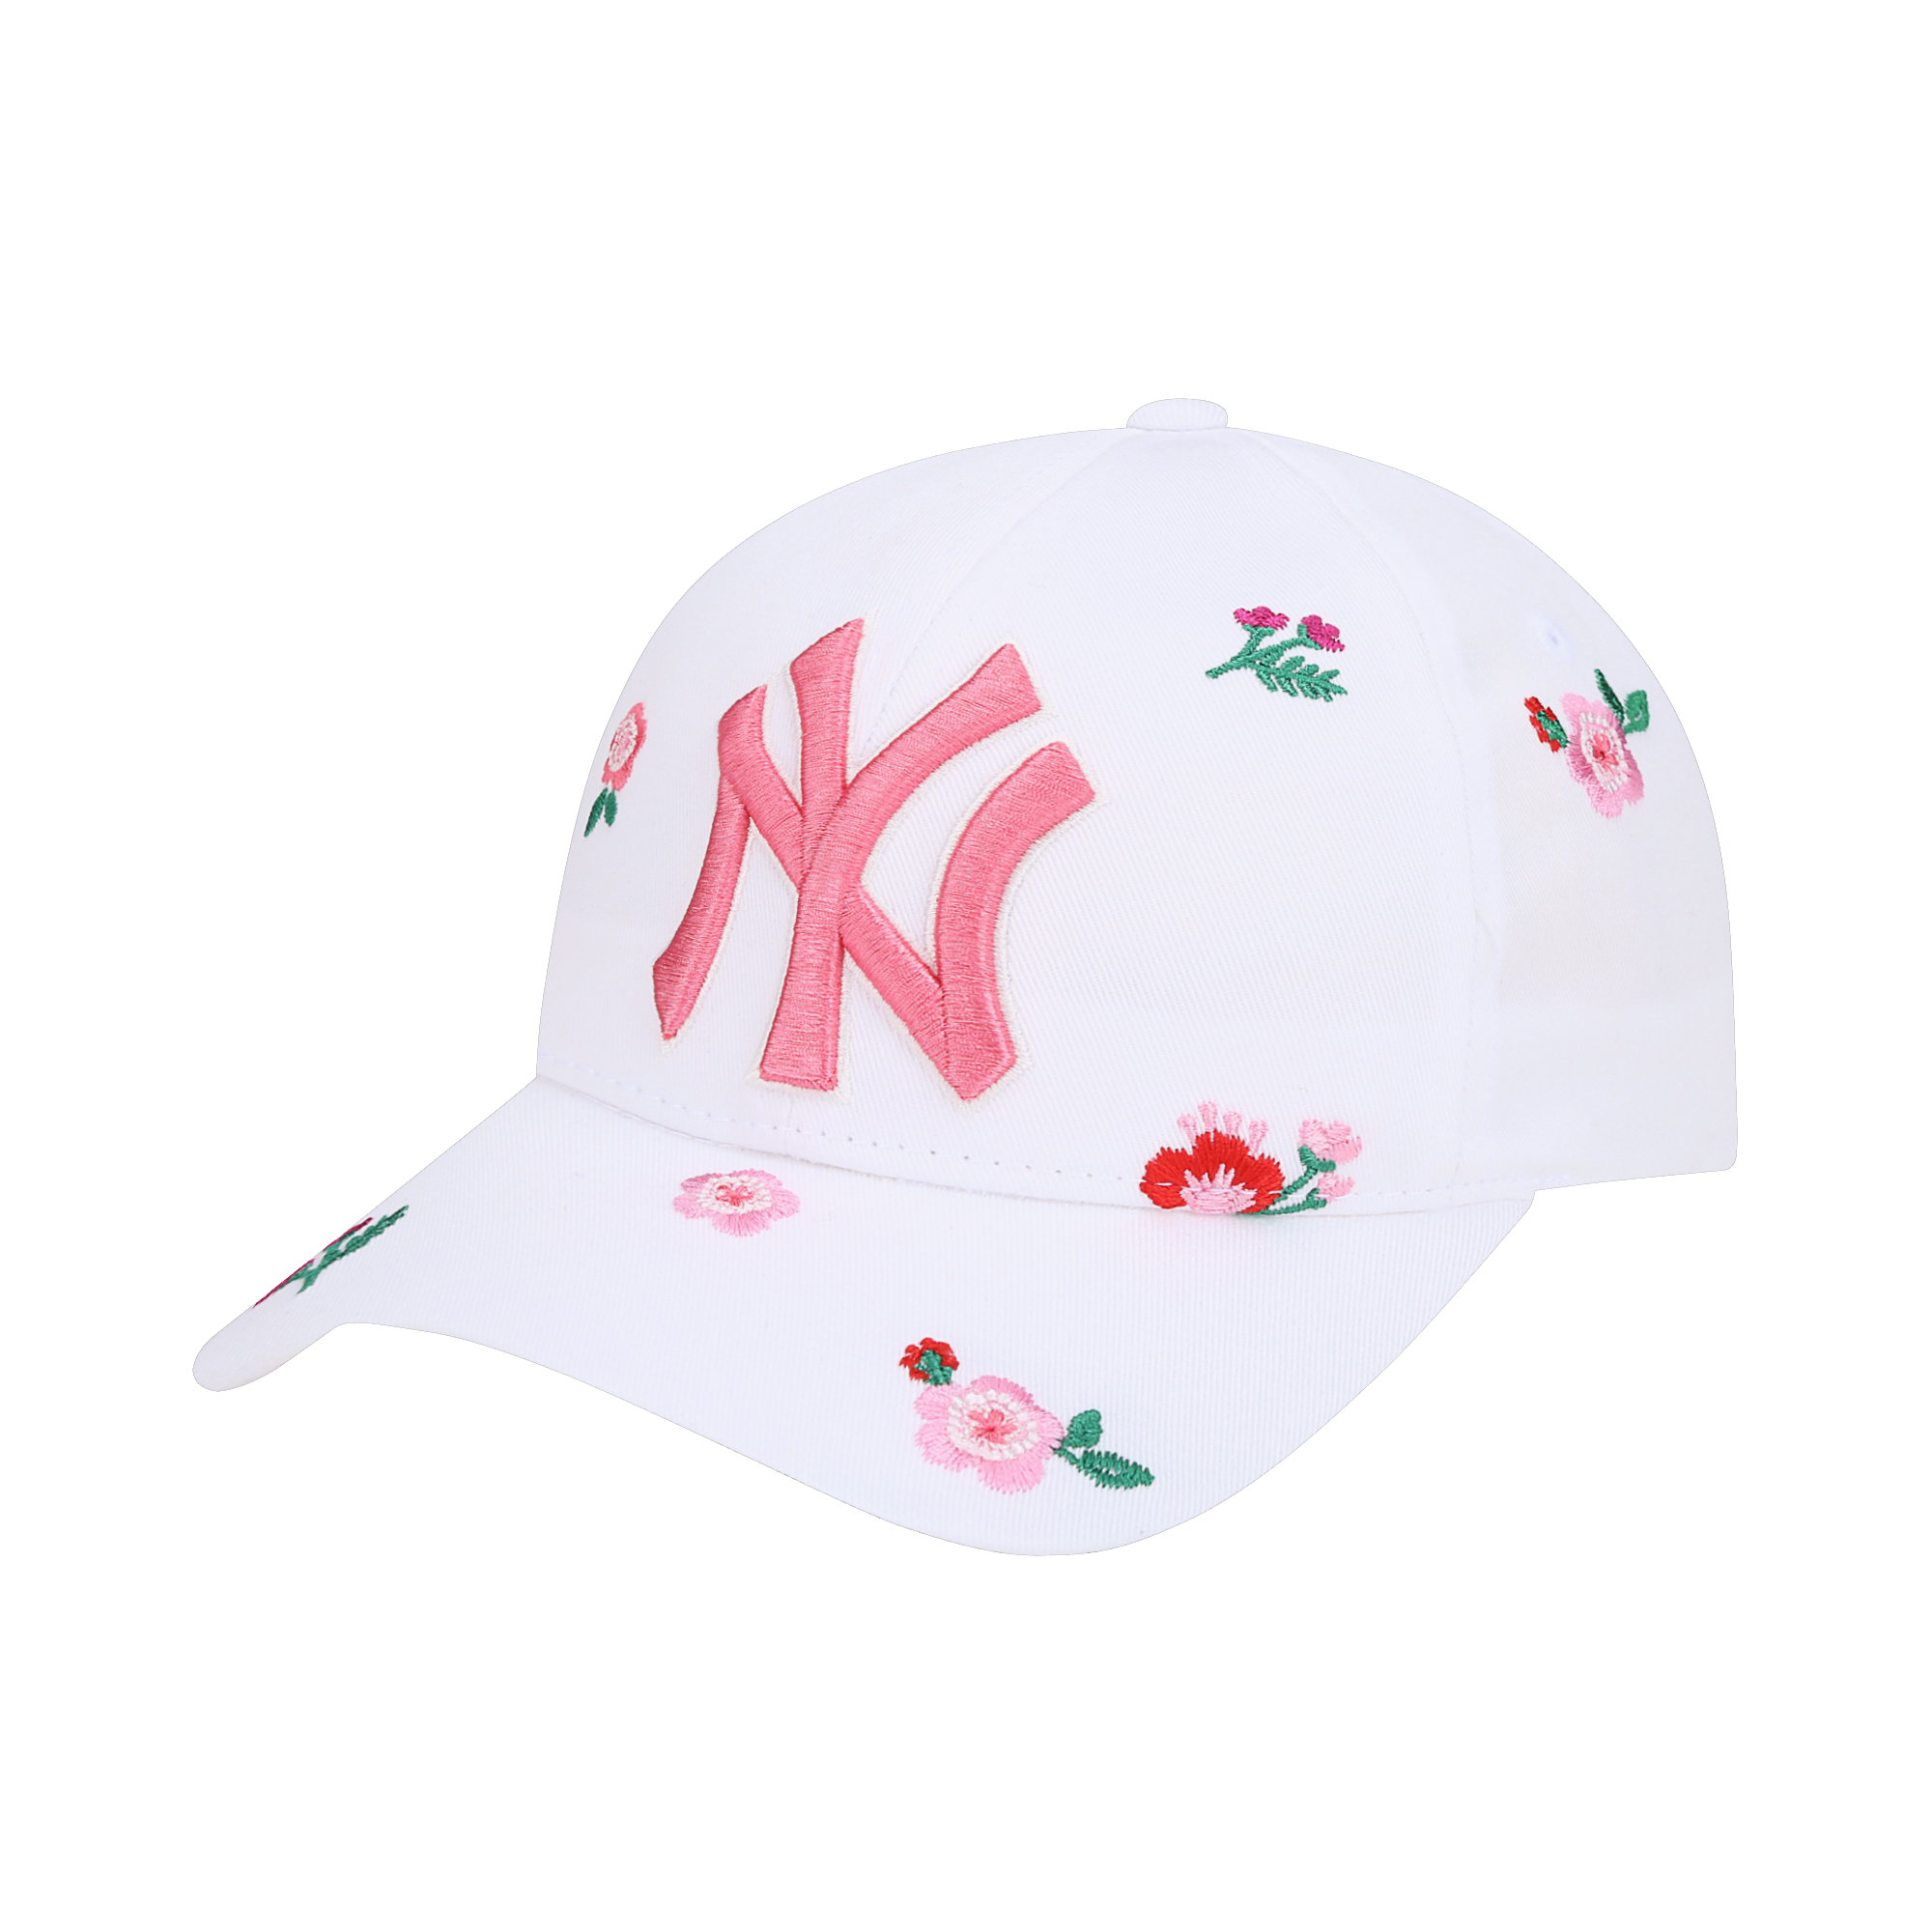 NEW YORK YANKEES BLOSSOM FLOWER EMBROIDERY CURVED CAP